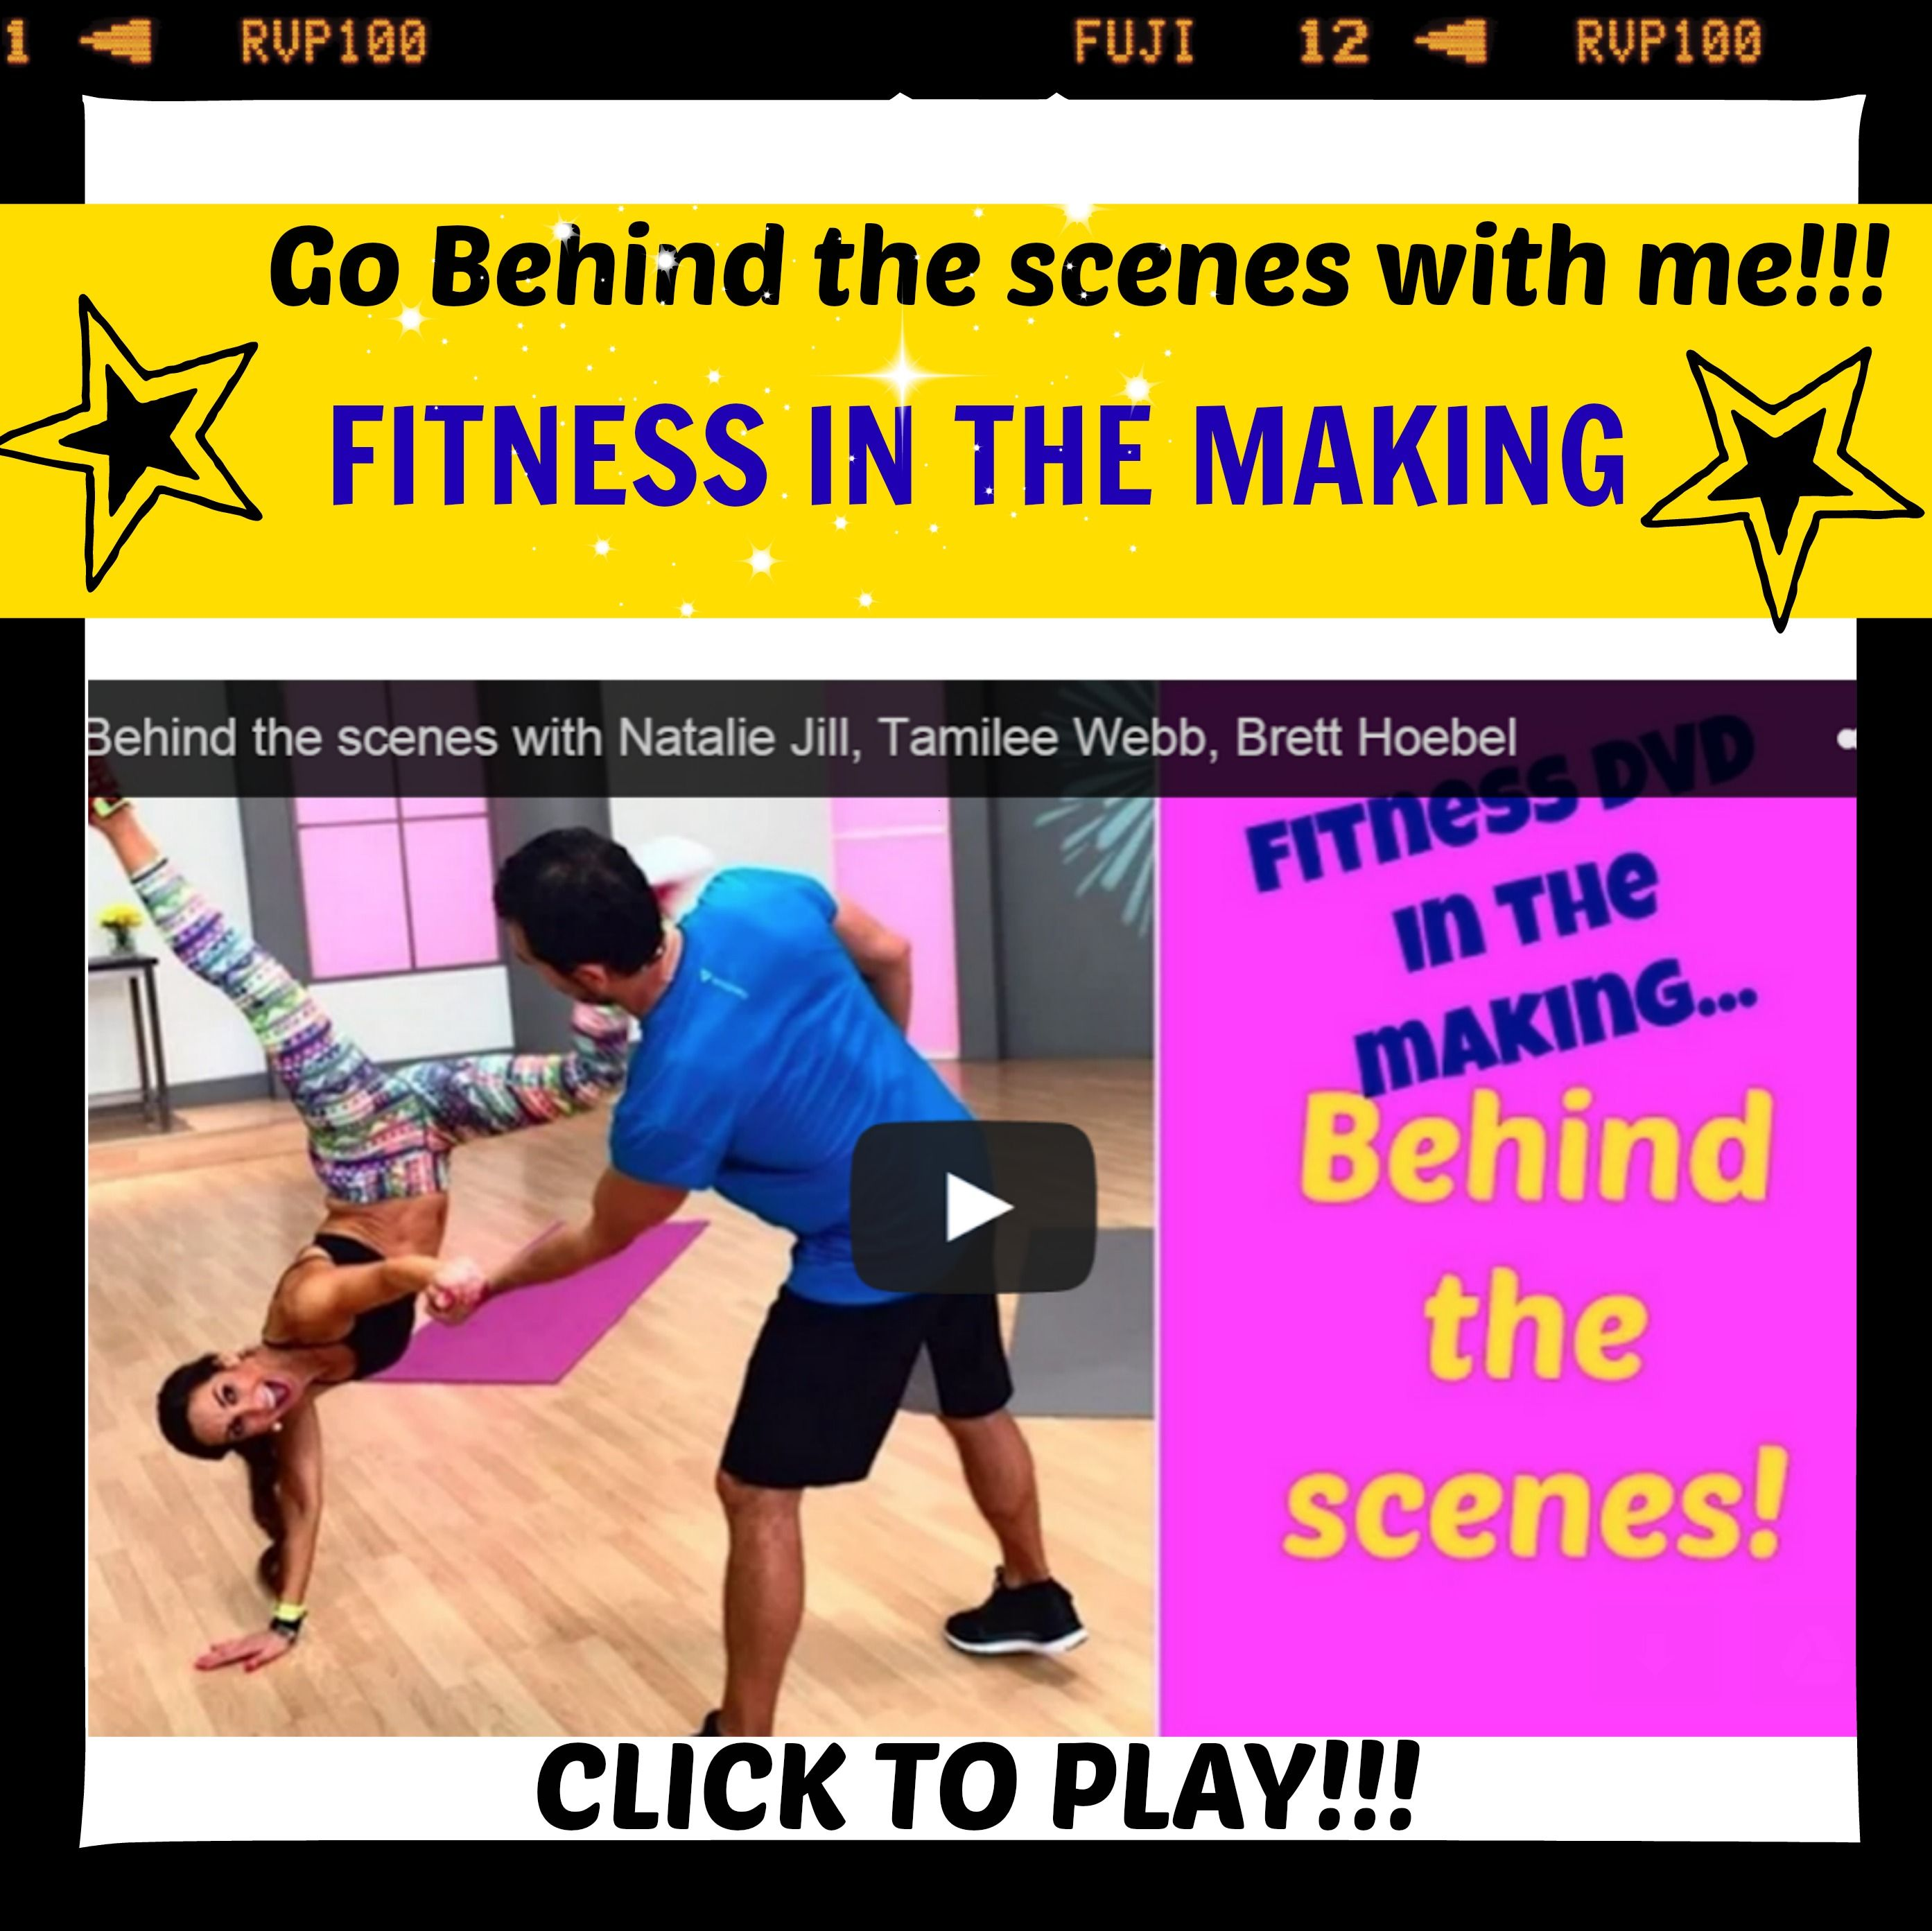 Fitness First Dvd Verleih: A Little Look Into The Bloopers, Fun Time And What Goes On